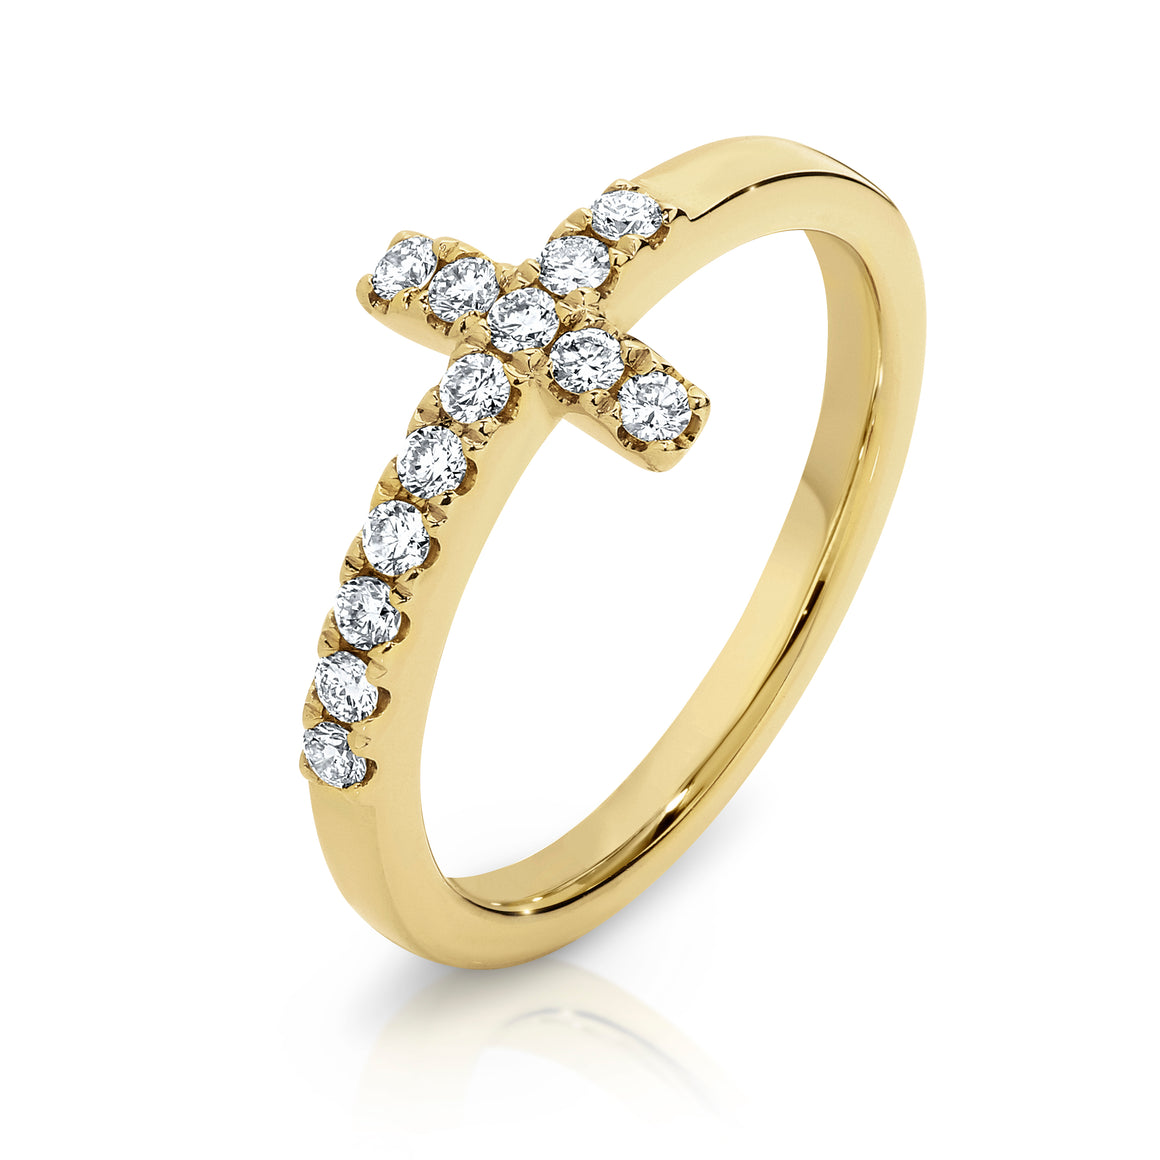 18ct Diamond 'Hope' Ring - Gemma Stone  ABN:51 621 127 866